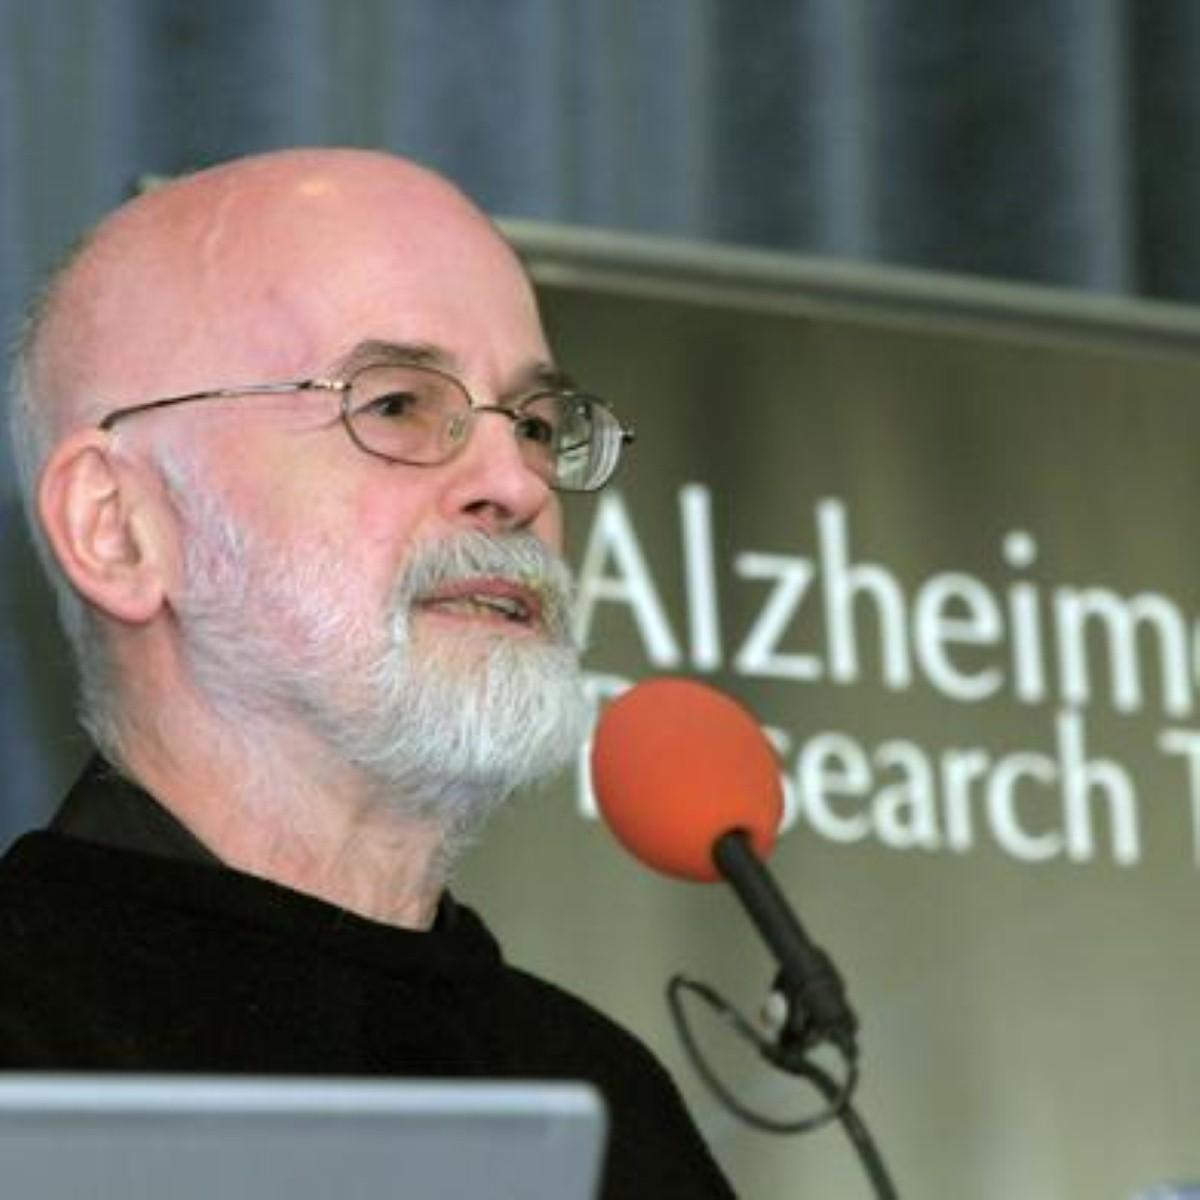 Bath dementia research event takes place next week